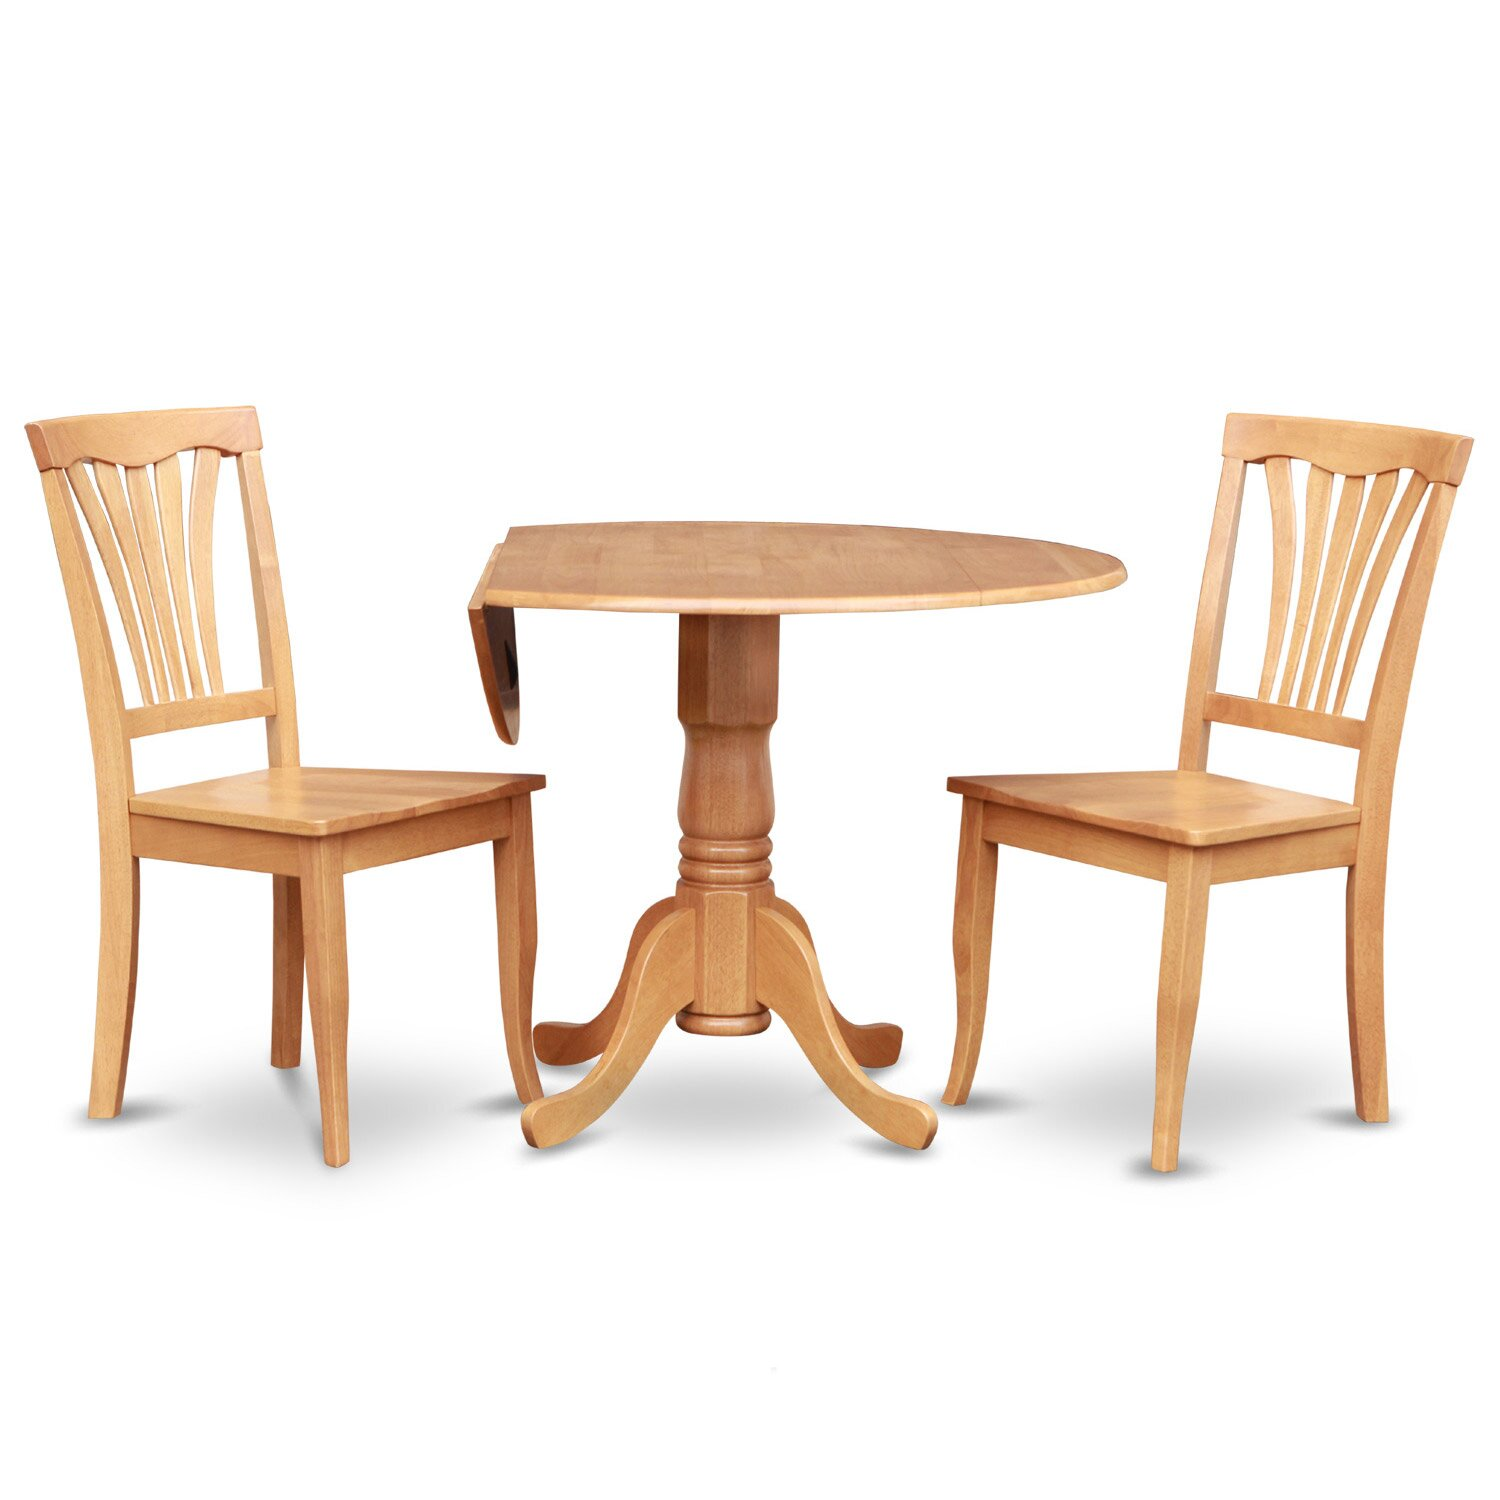 Wooden importers dublin 3 piece dining set reviews wayfair for Table and chair set